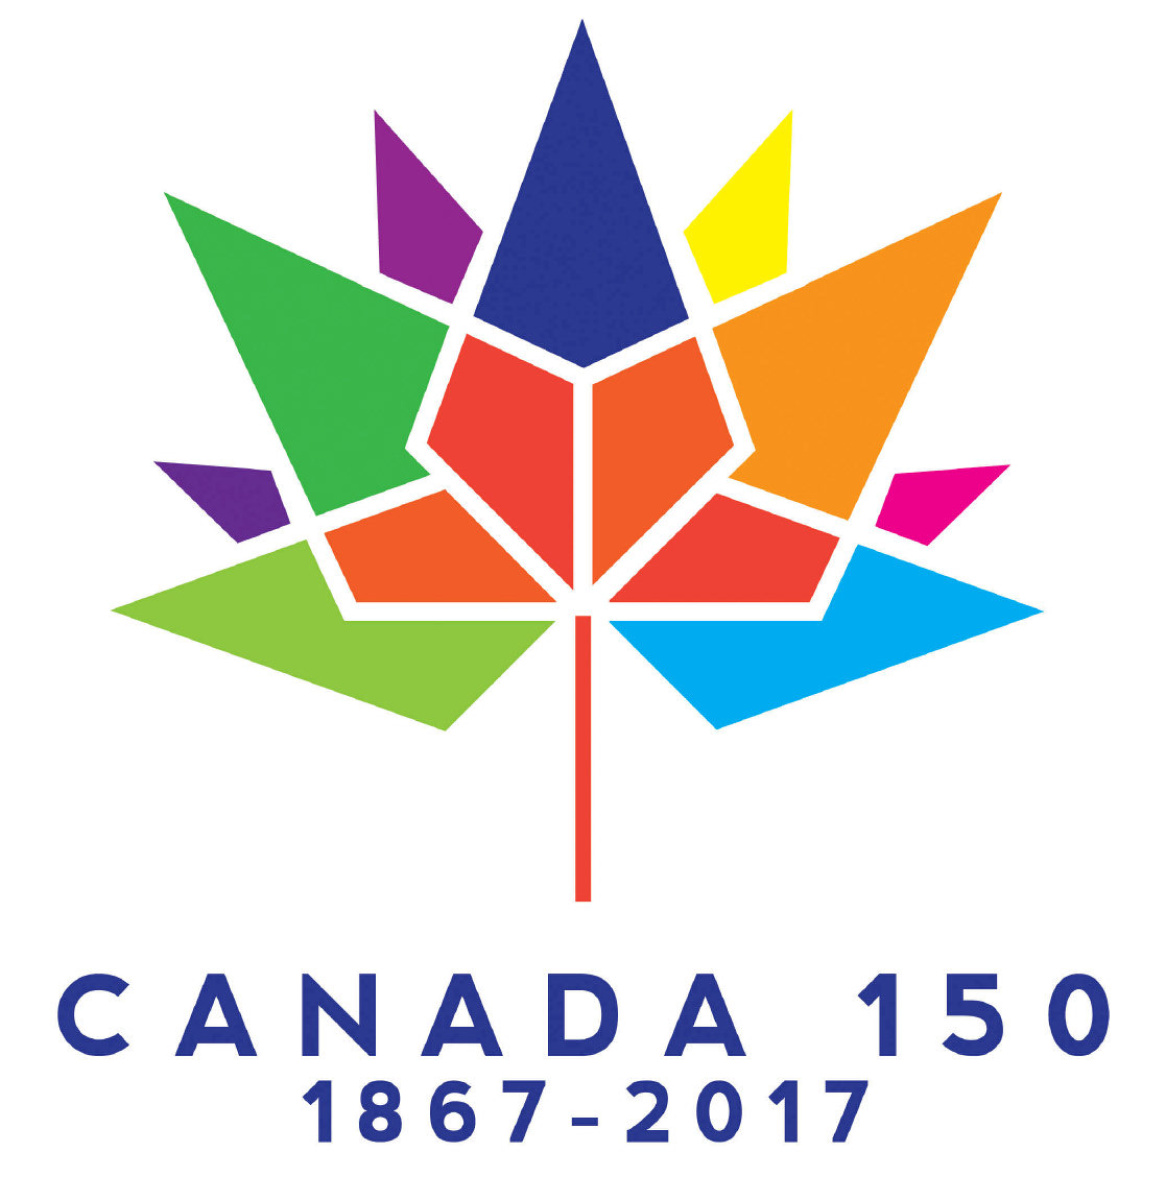 Canada Day 150 Celebrations in Lethbridge